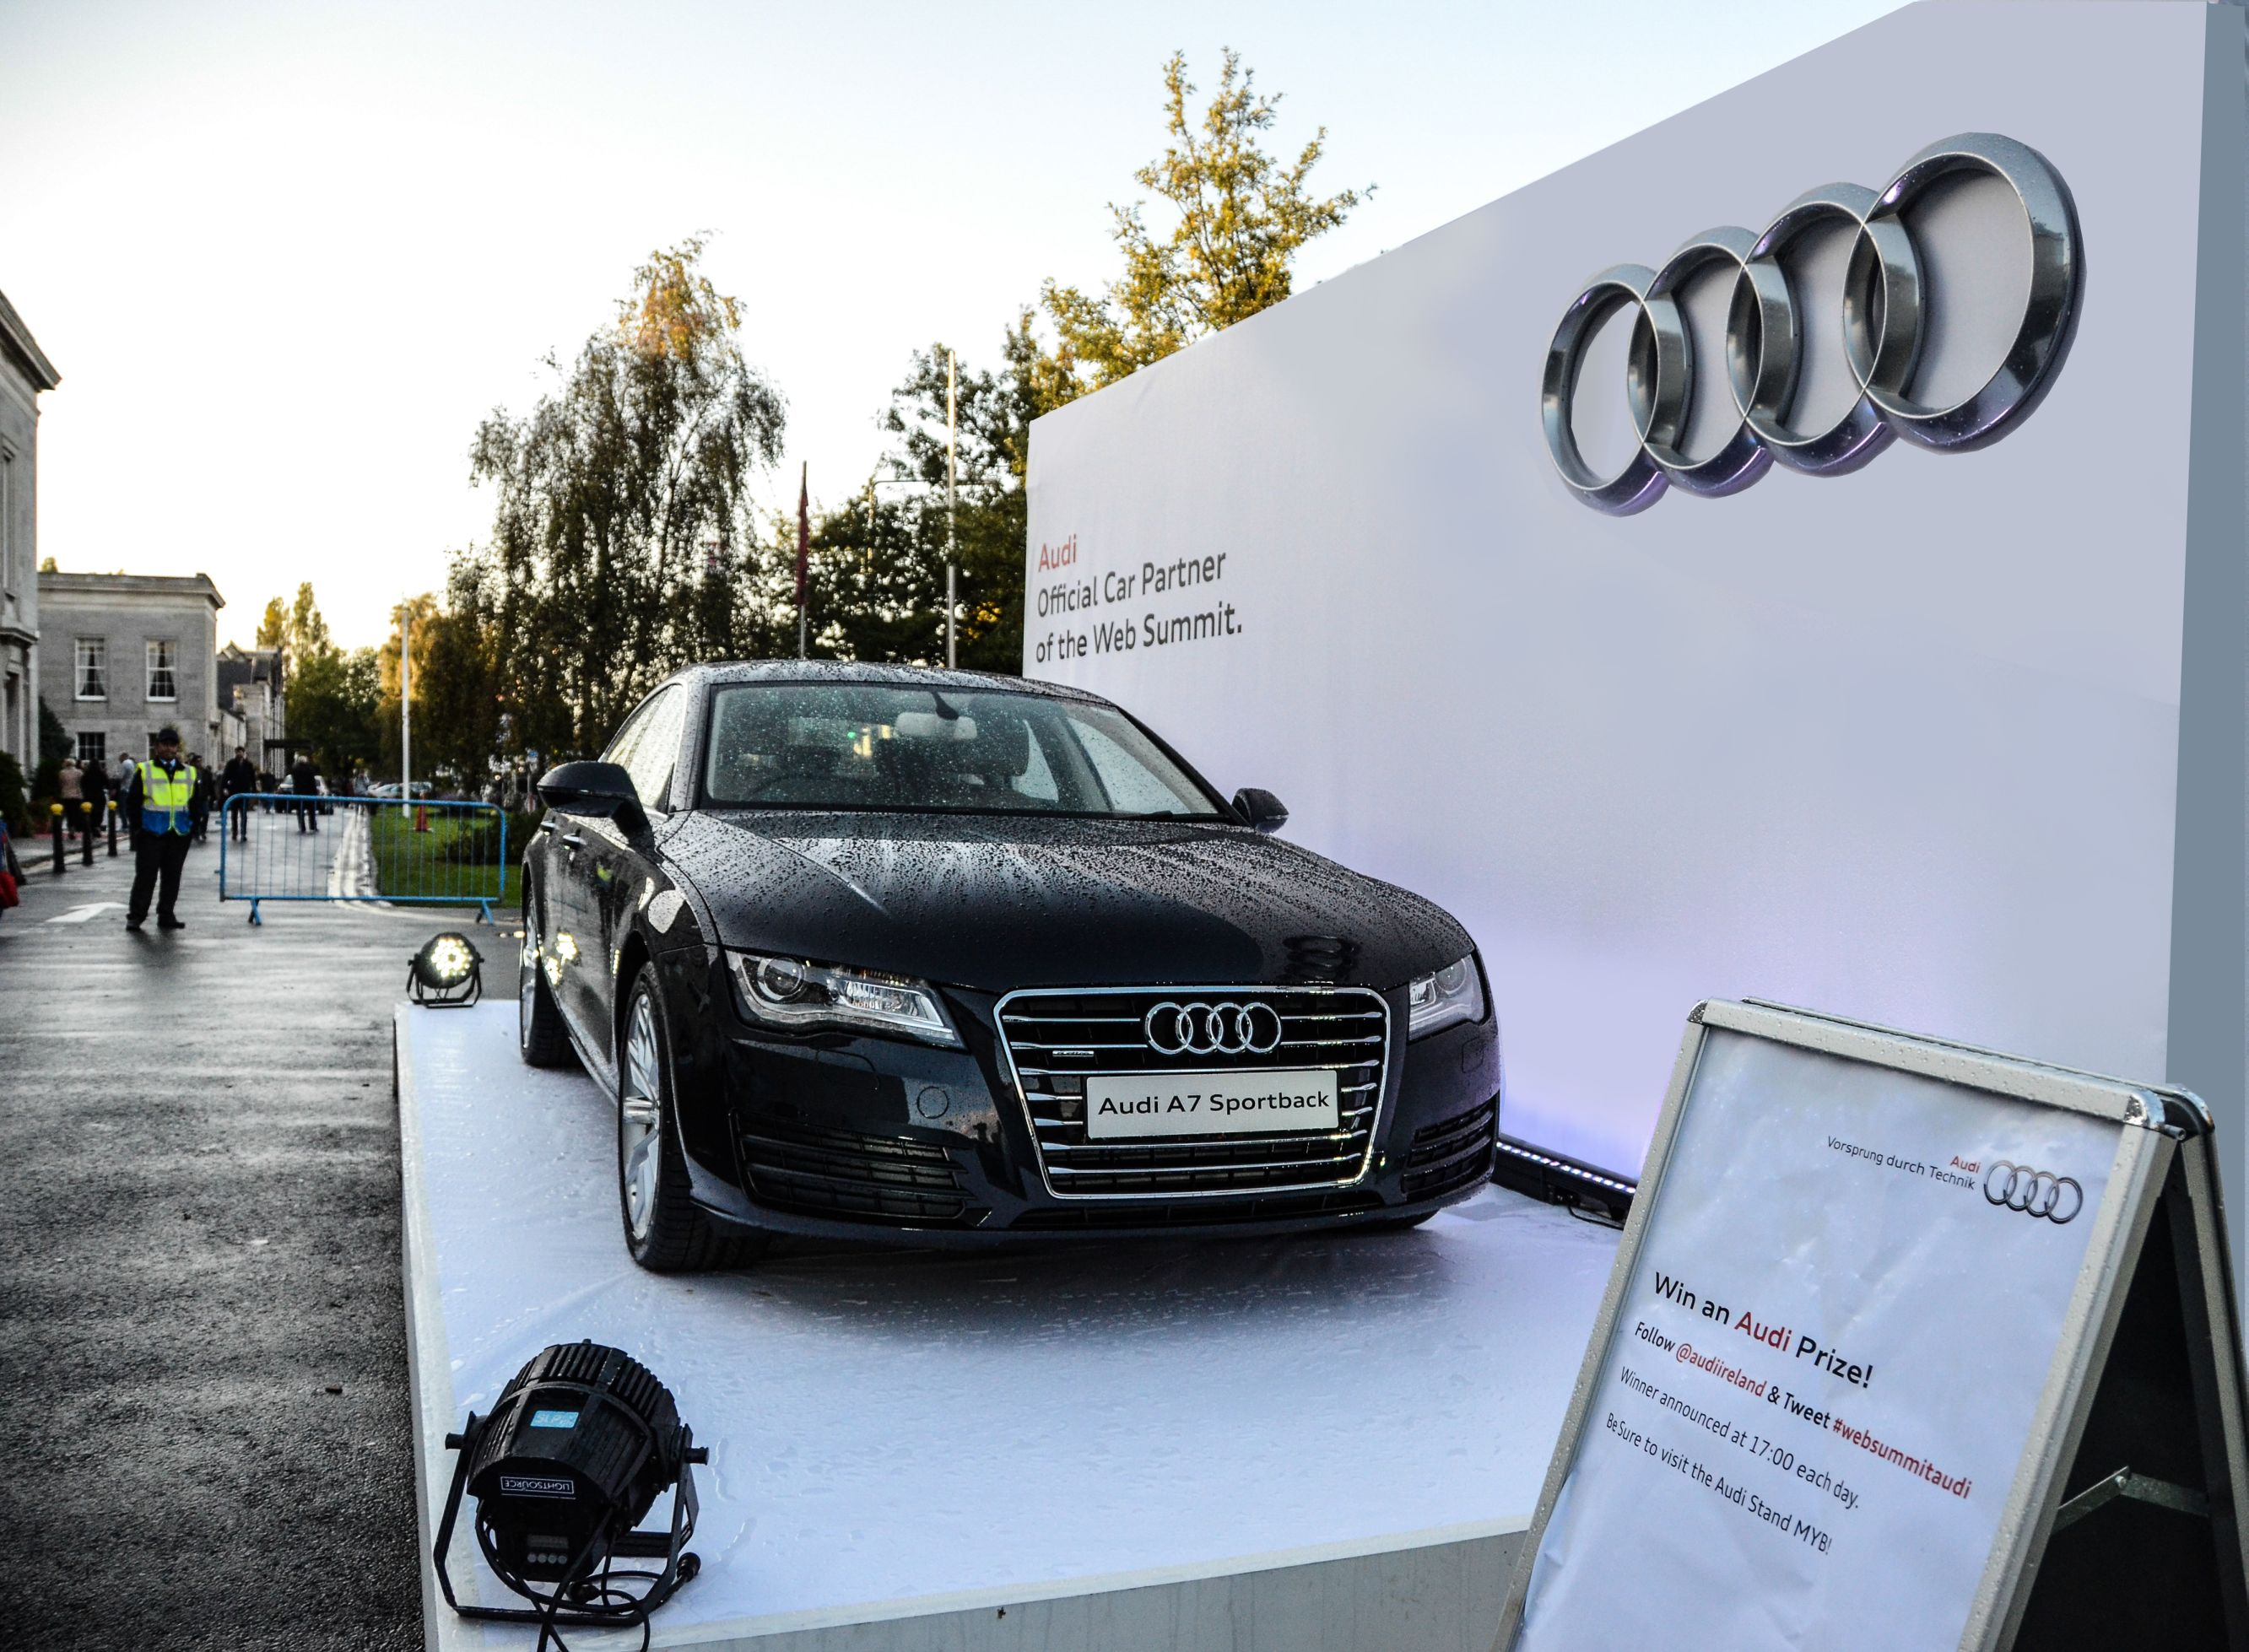 Audi Websummit outdoor display in association with Pluto Events